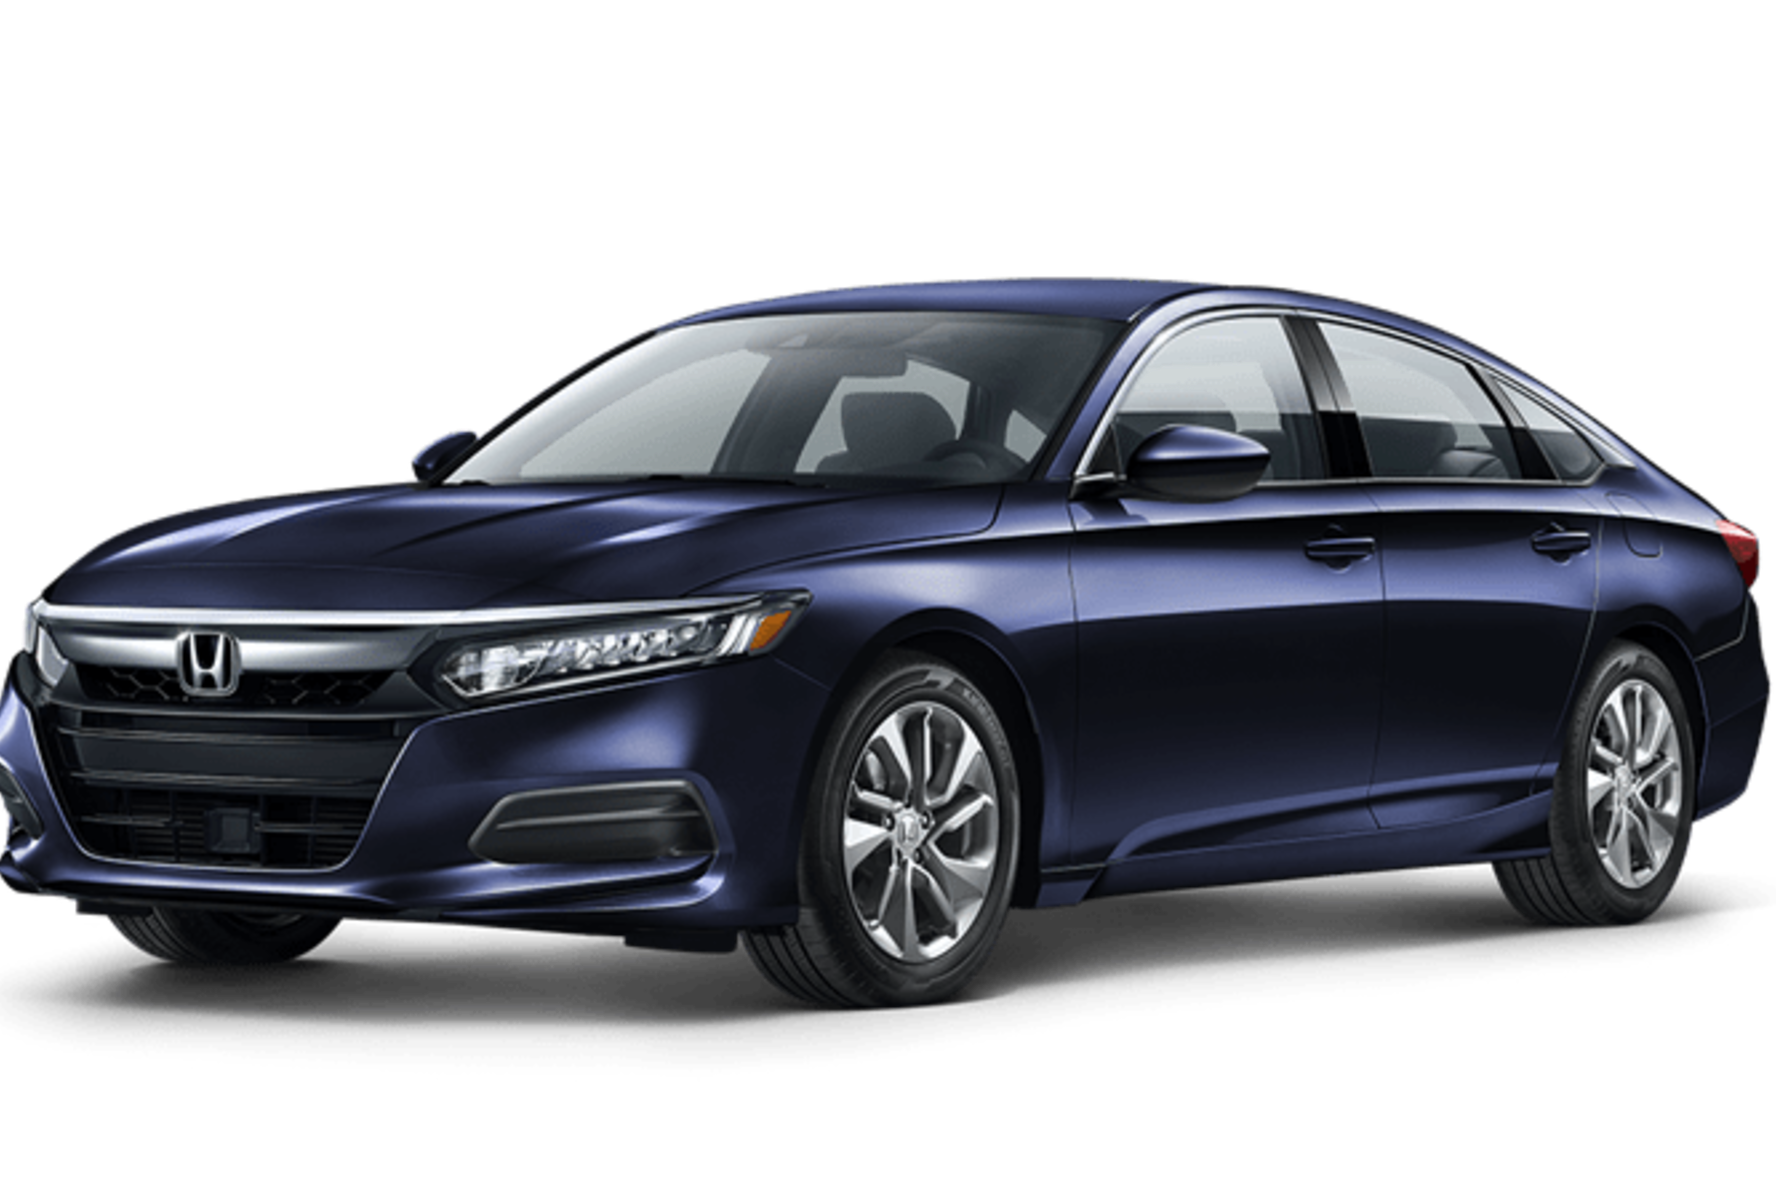 The 2019 Honda Accord EX for sale at Headquarter Honda in Clermont, FL